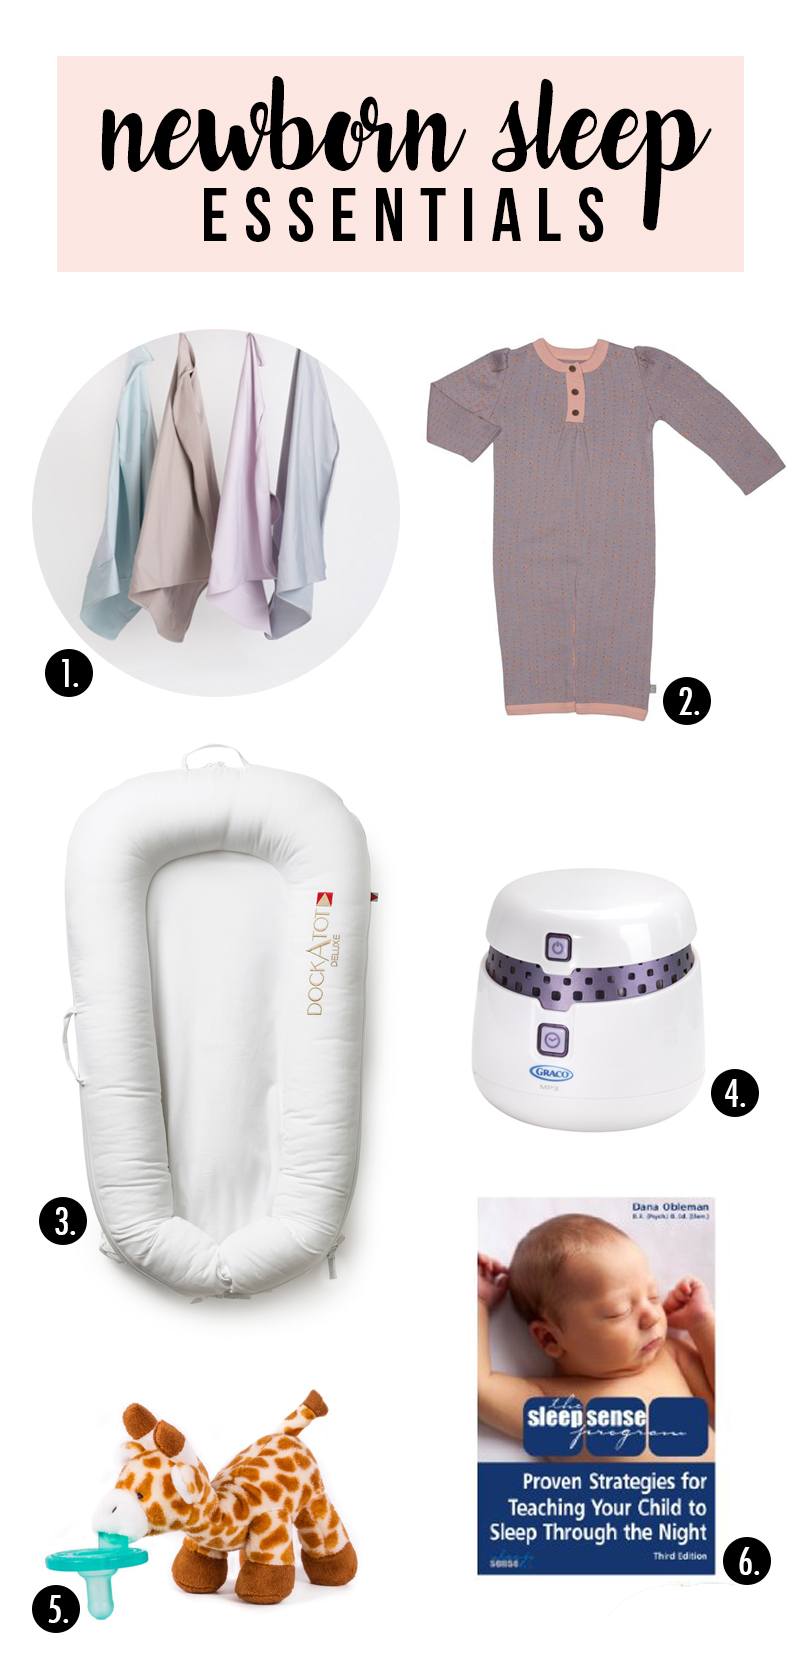 newborn sleep essentials